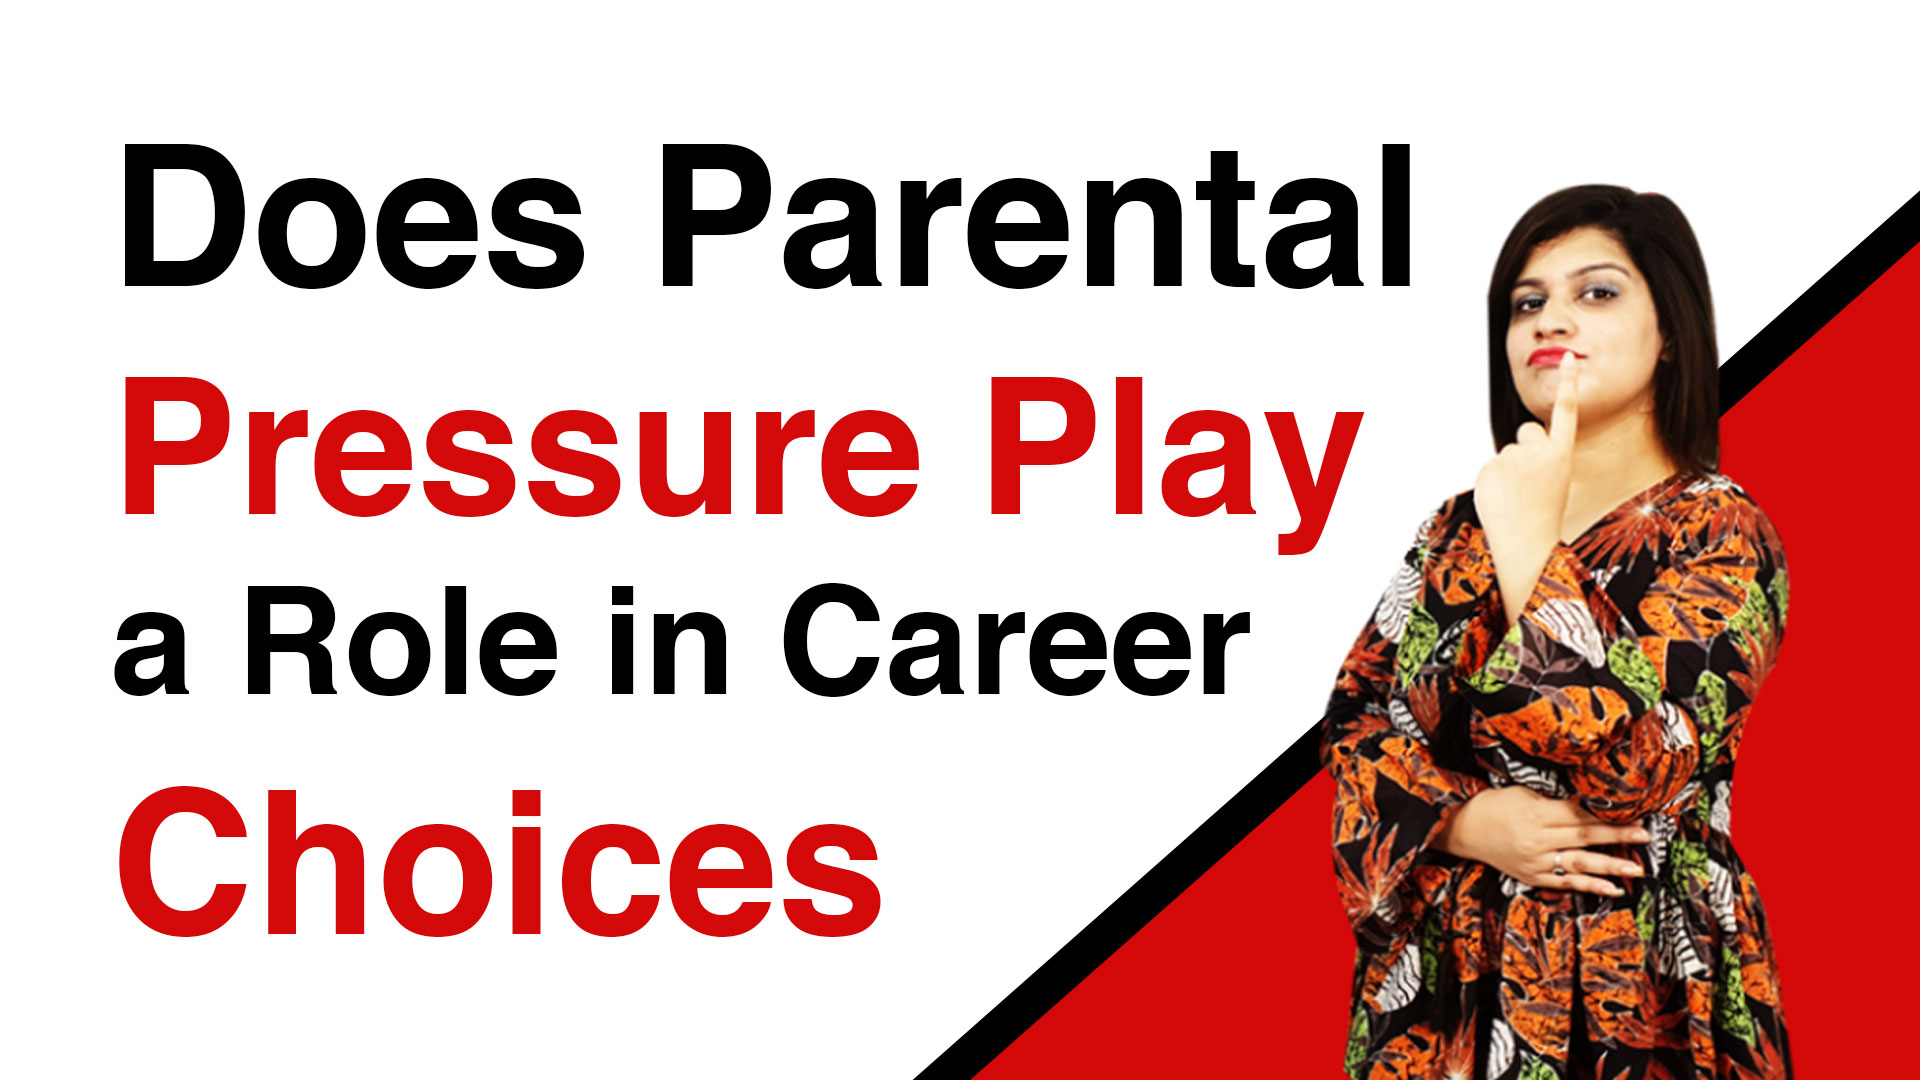 Does-Parental-Pressure-Play-a-Role-in-Career-Choices